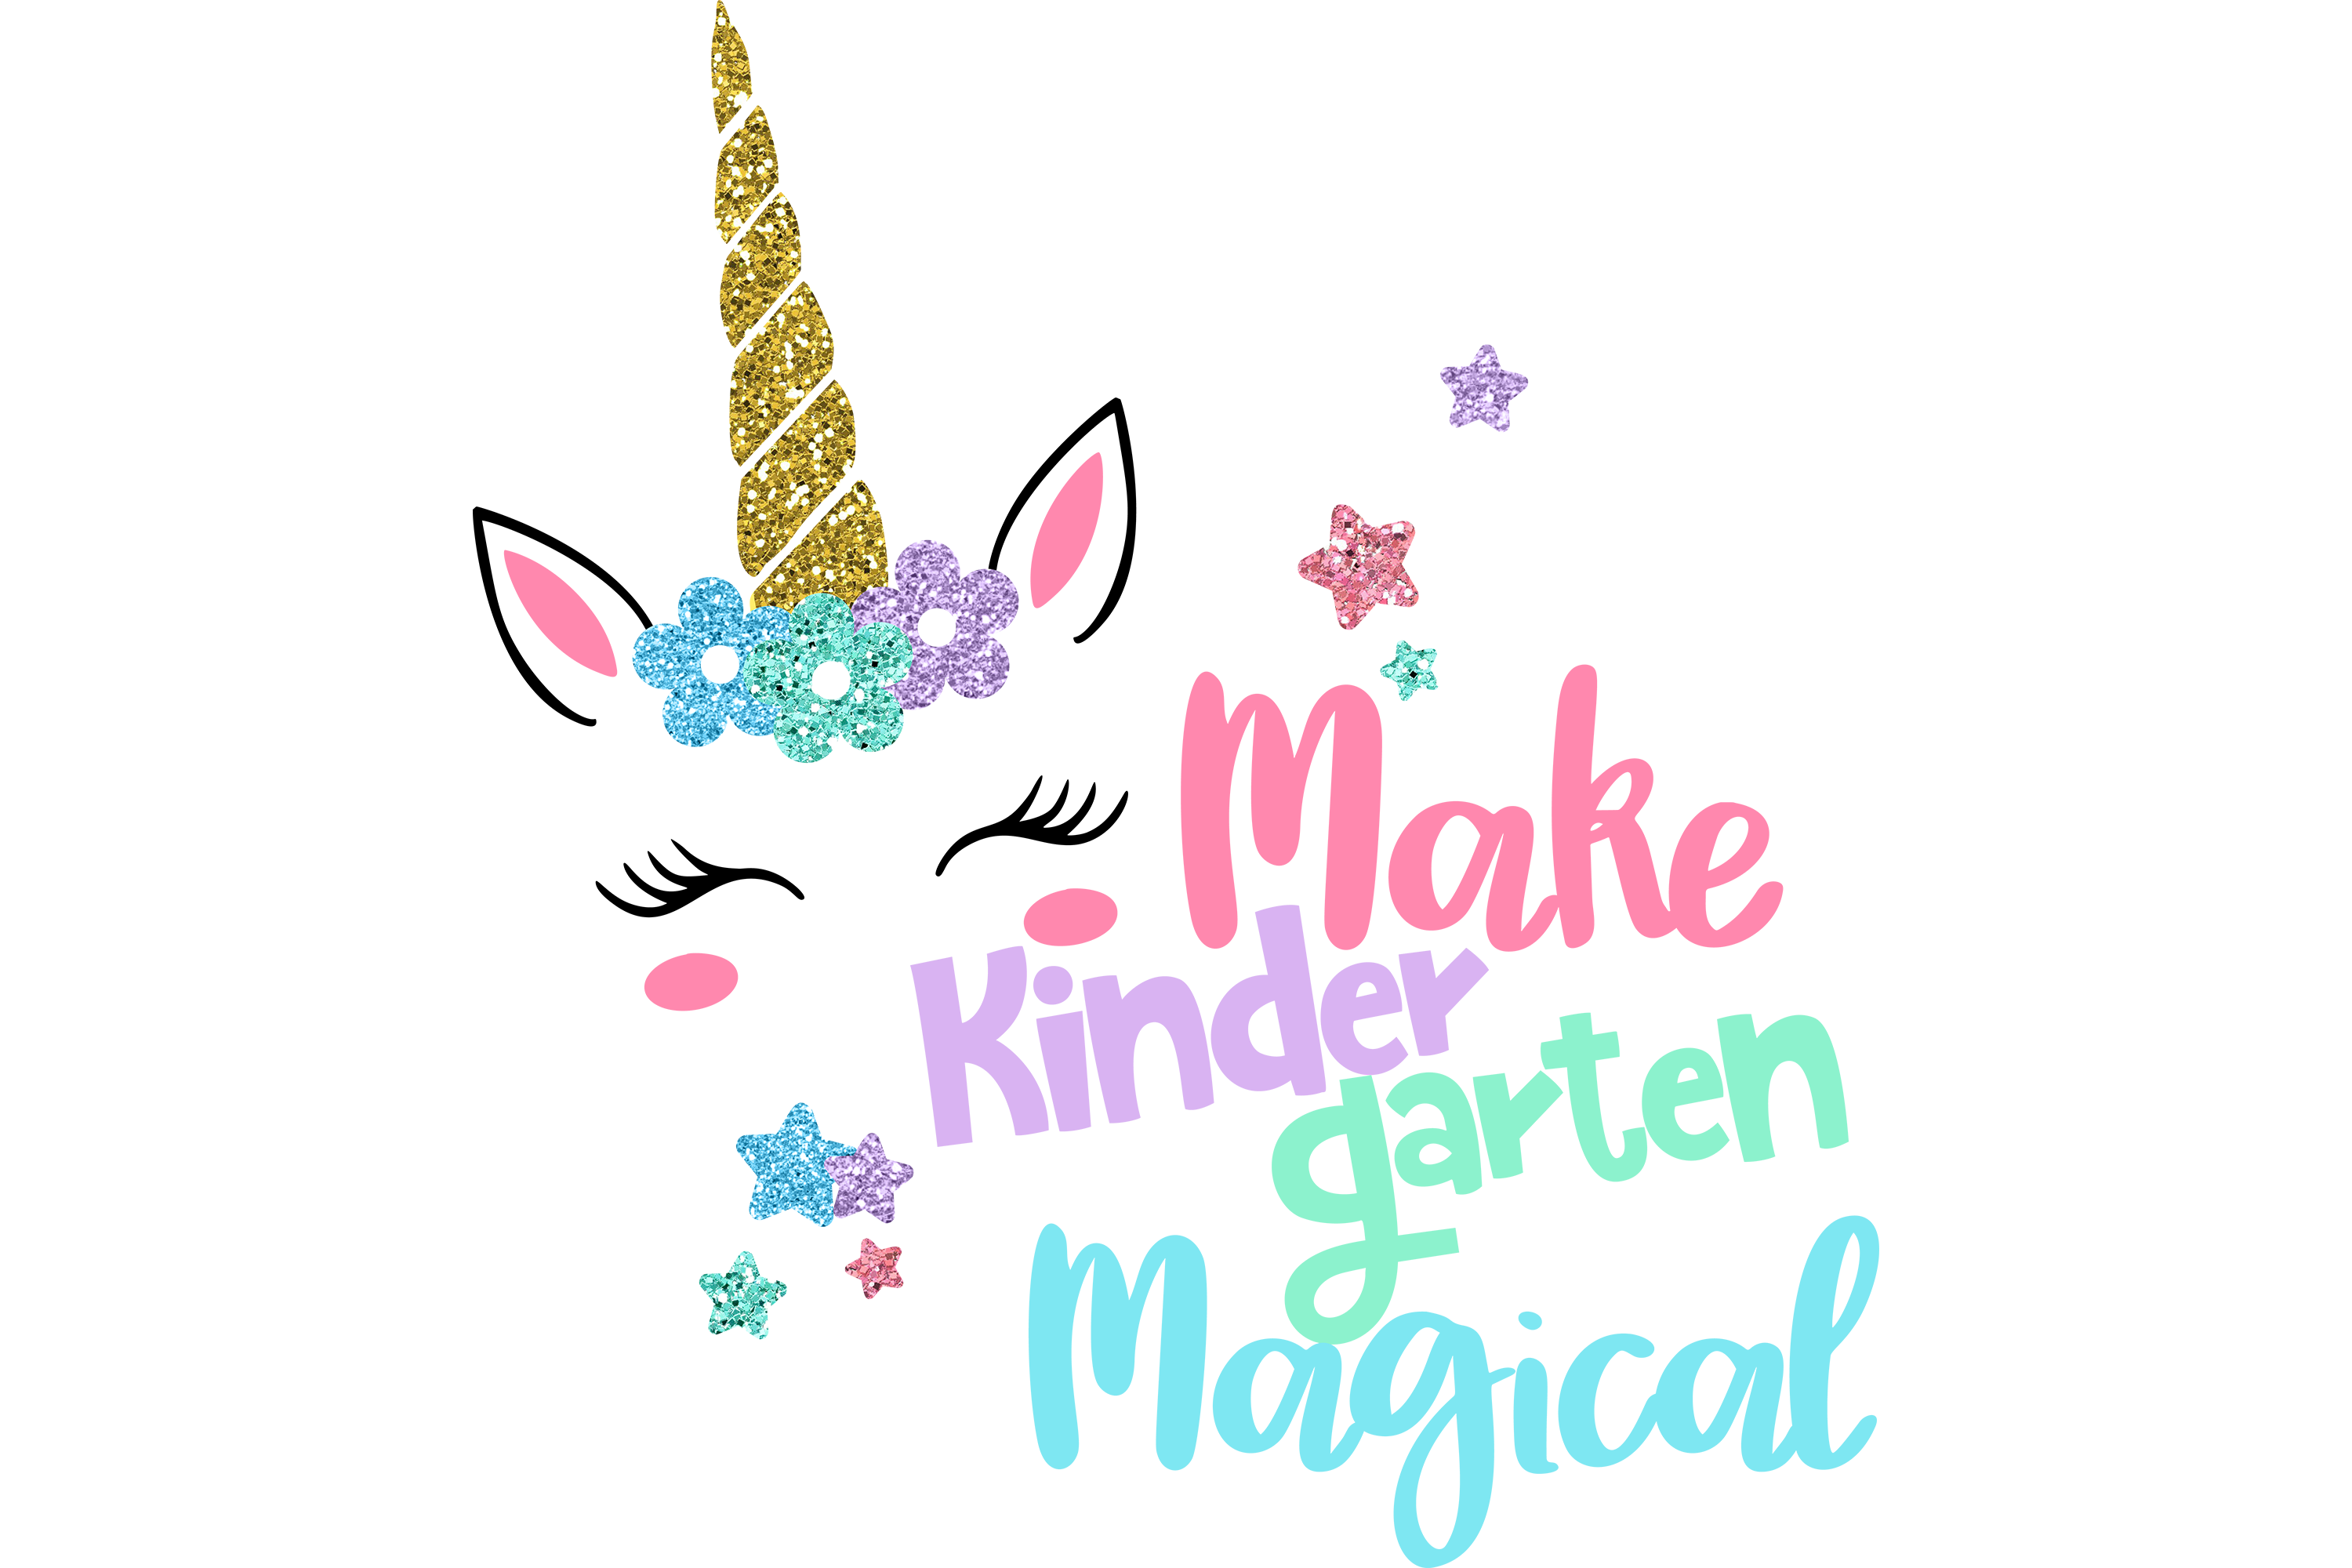 Download Free Make Kindergarten Magical Unicorn Graphic By Am Digital Designs for Cricut Explore, Silhouette and other cutting machines.